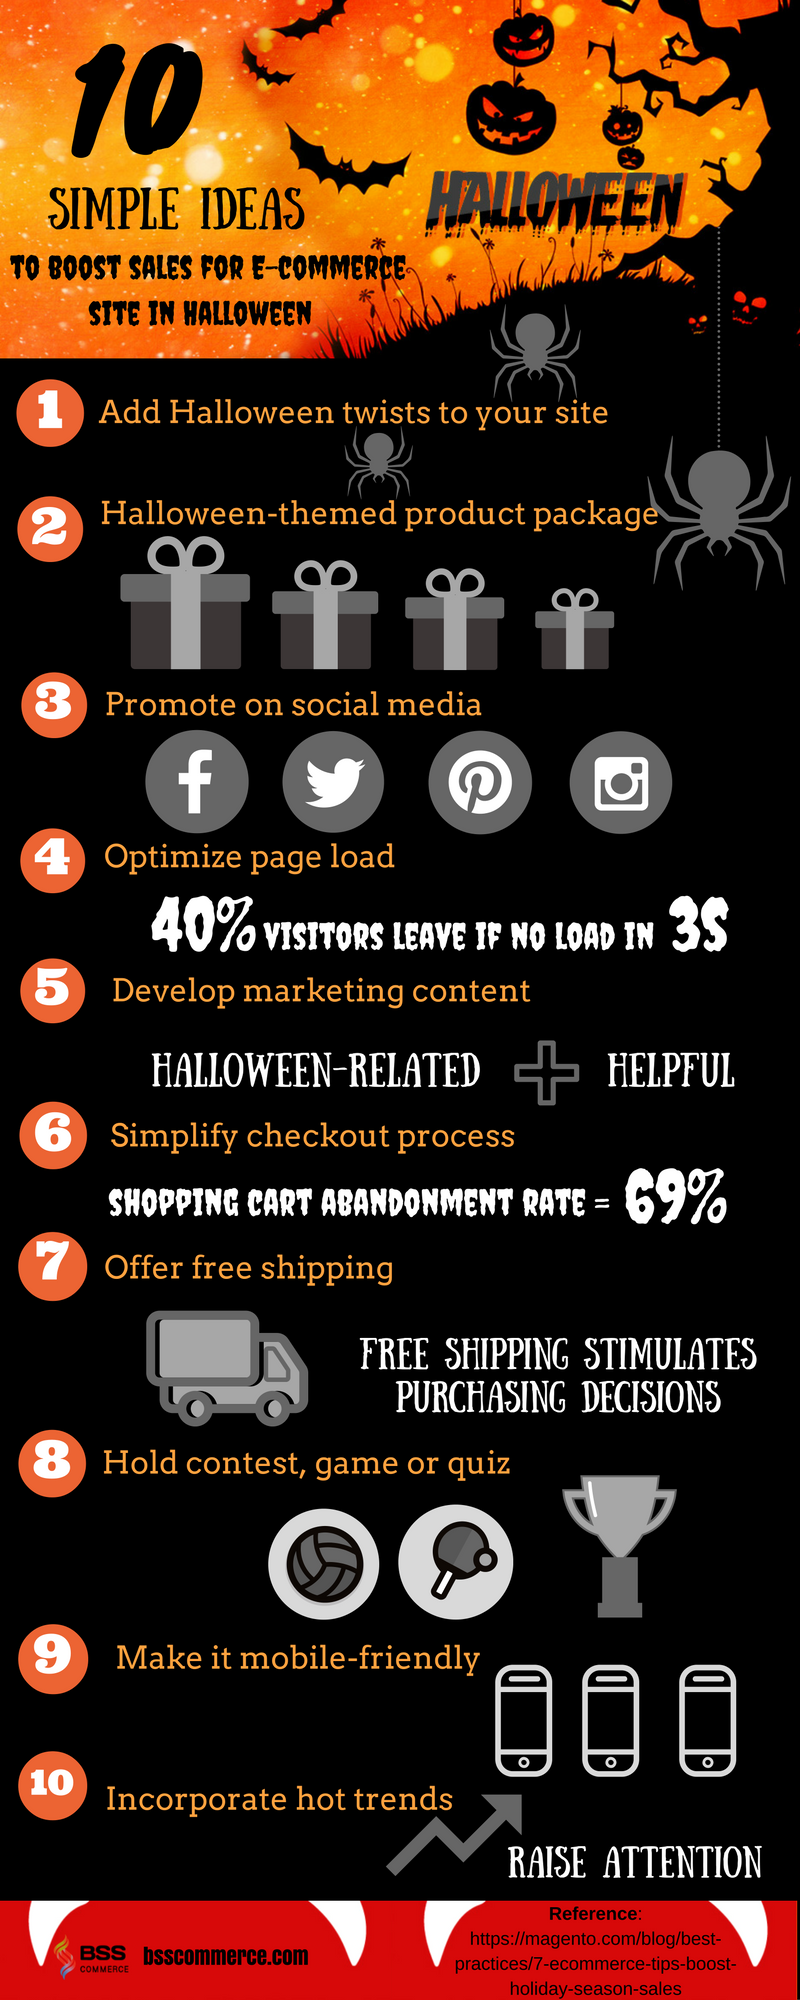 10 tips to boost sales for E-commerce site in Halloween